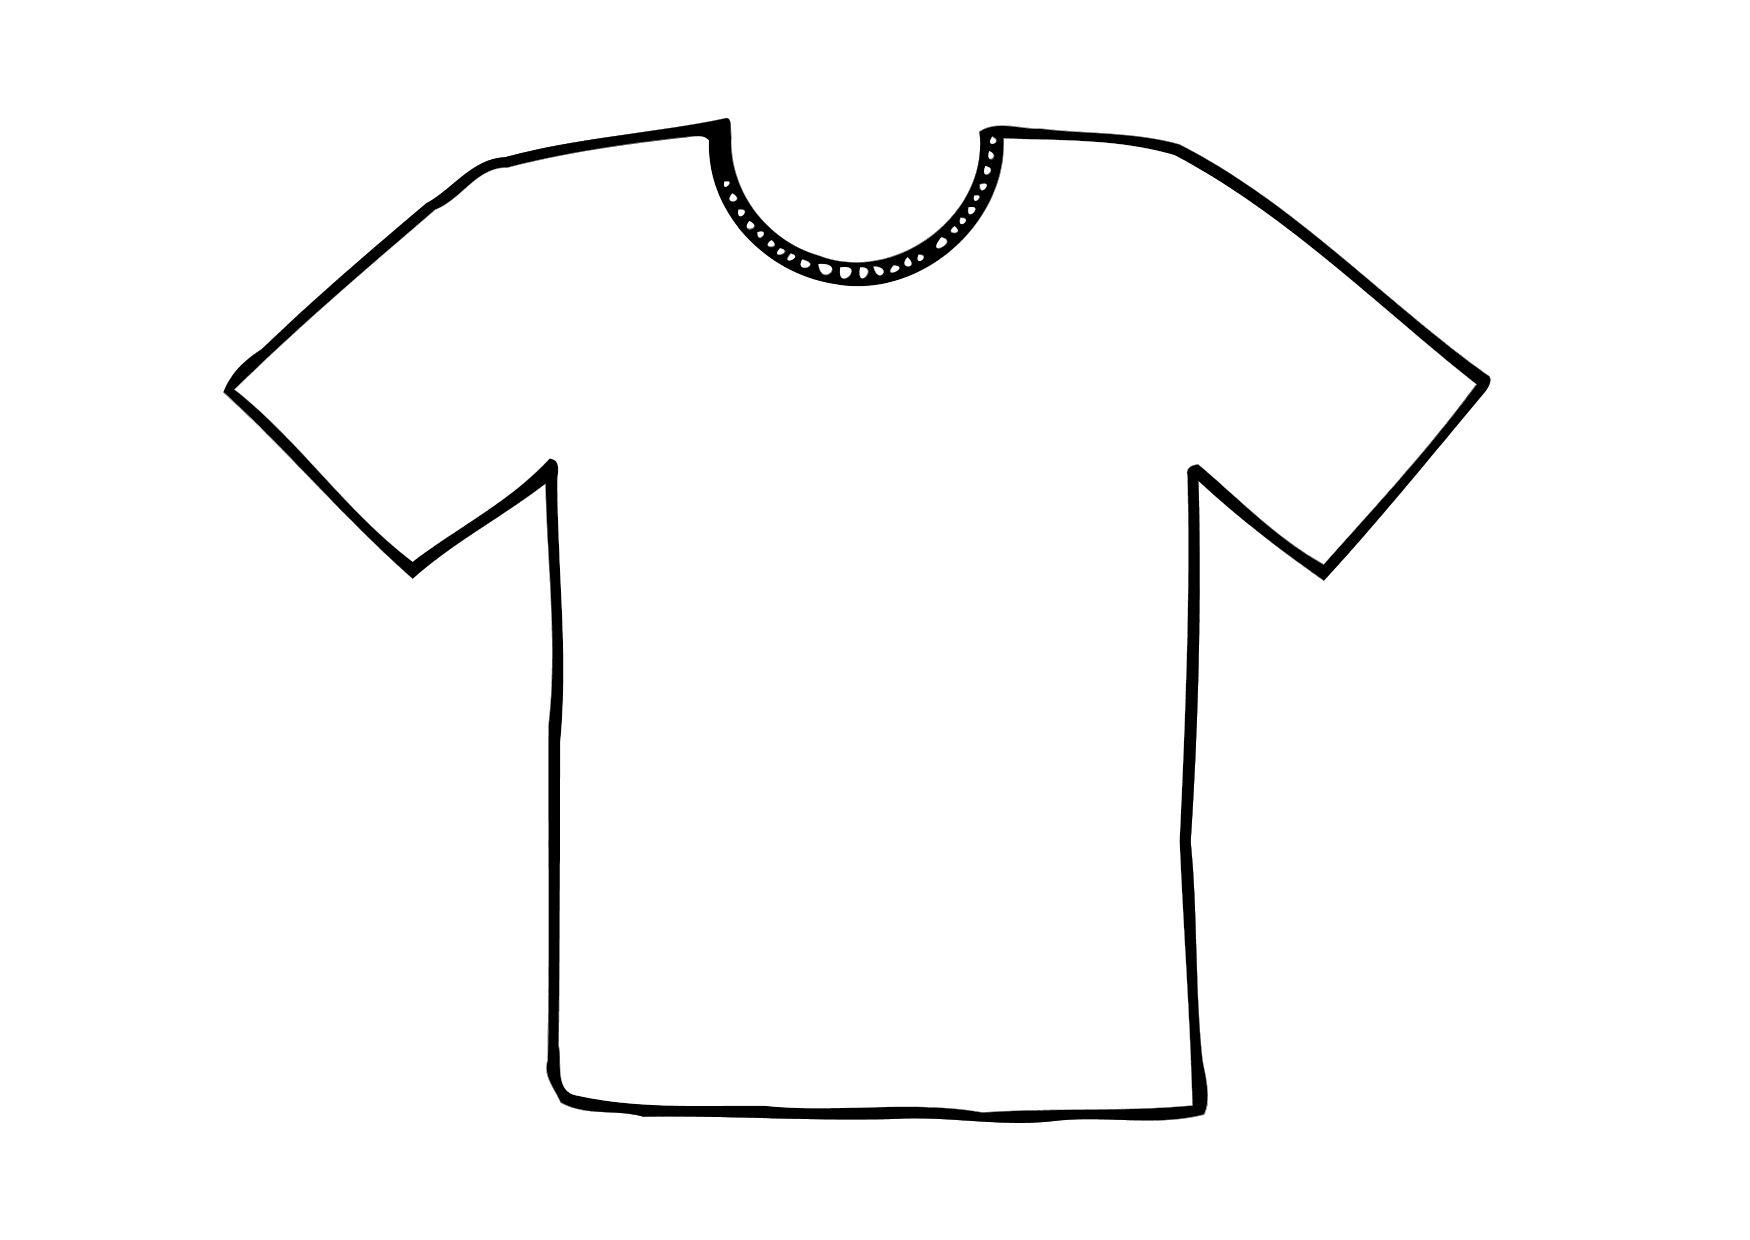 coloring pages shirt - photo#3